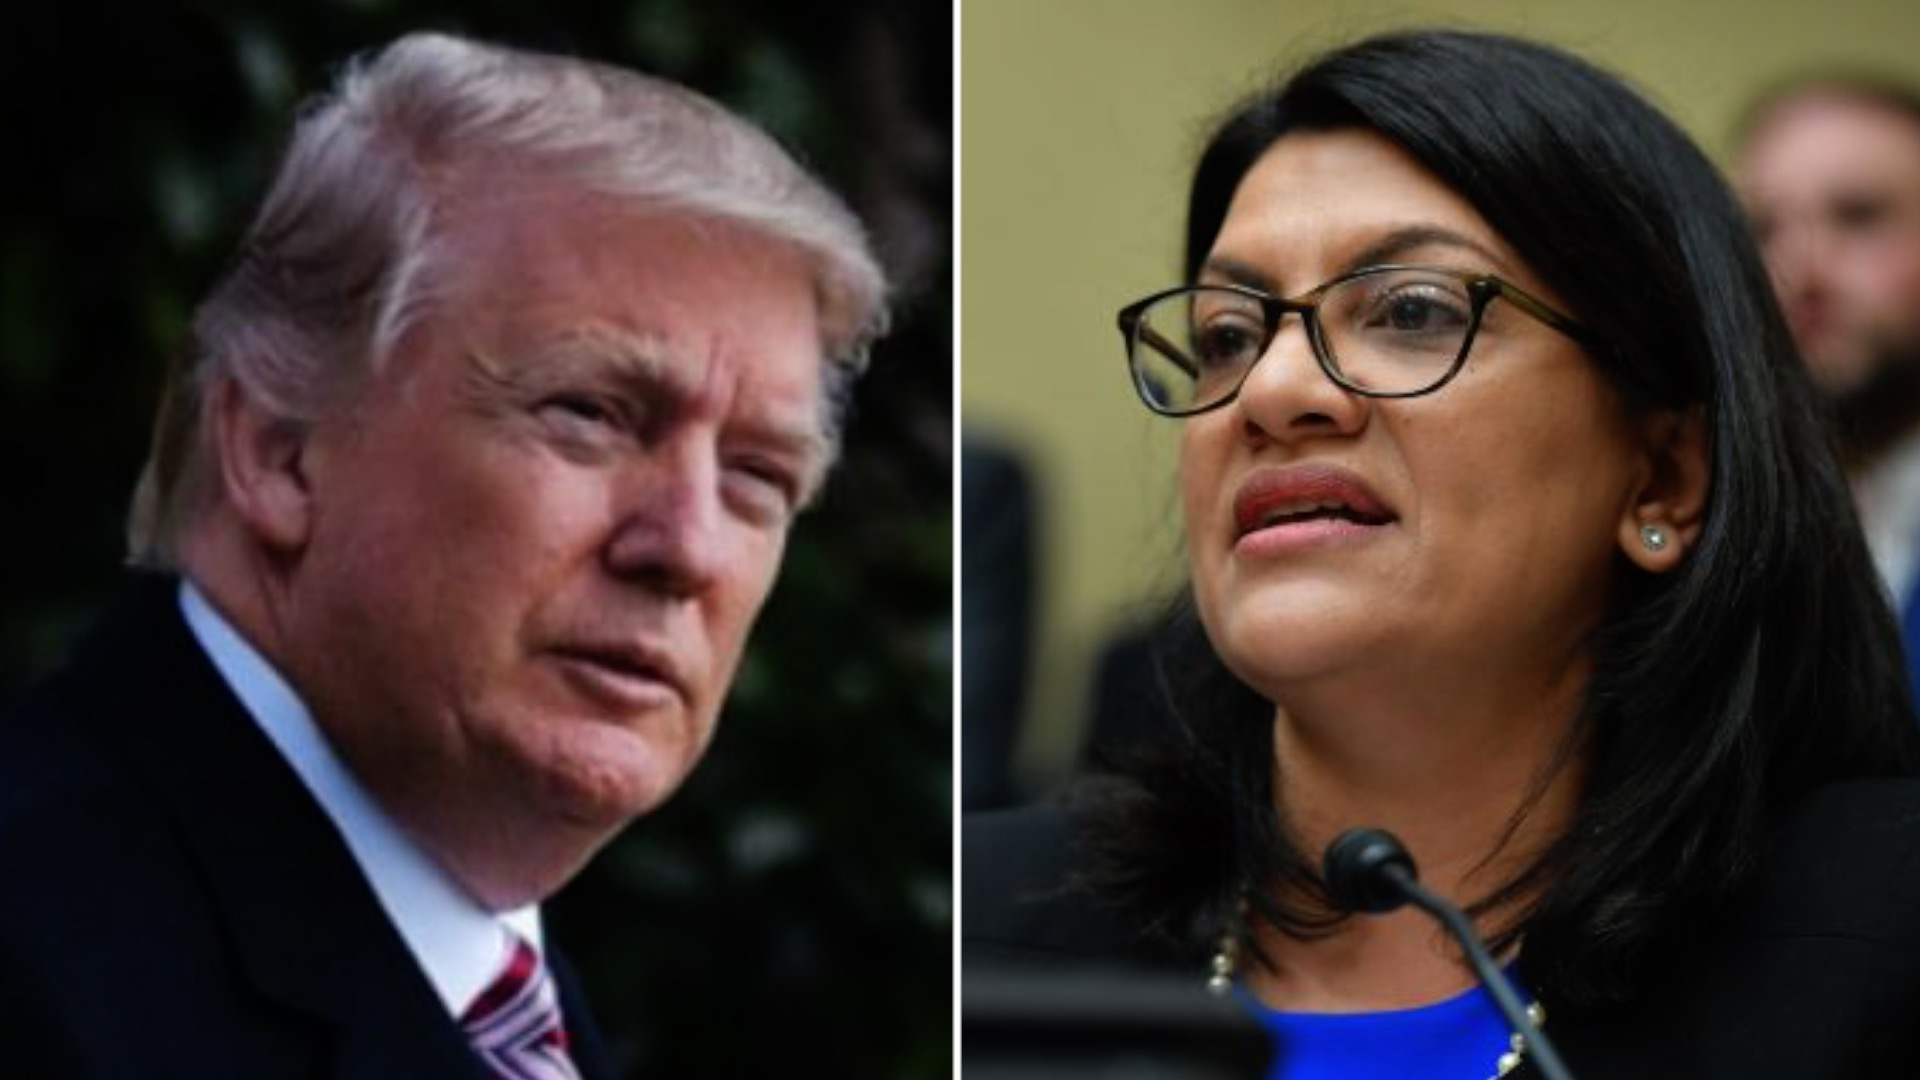 Omar and Tlaib Publicly Attack Israel's Decision to Bar Them From the Country